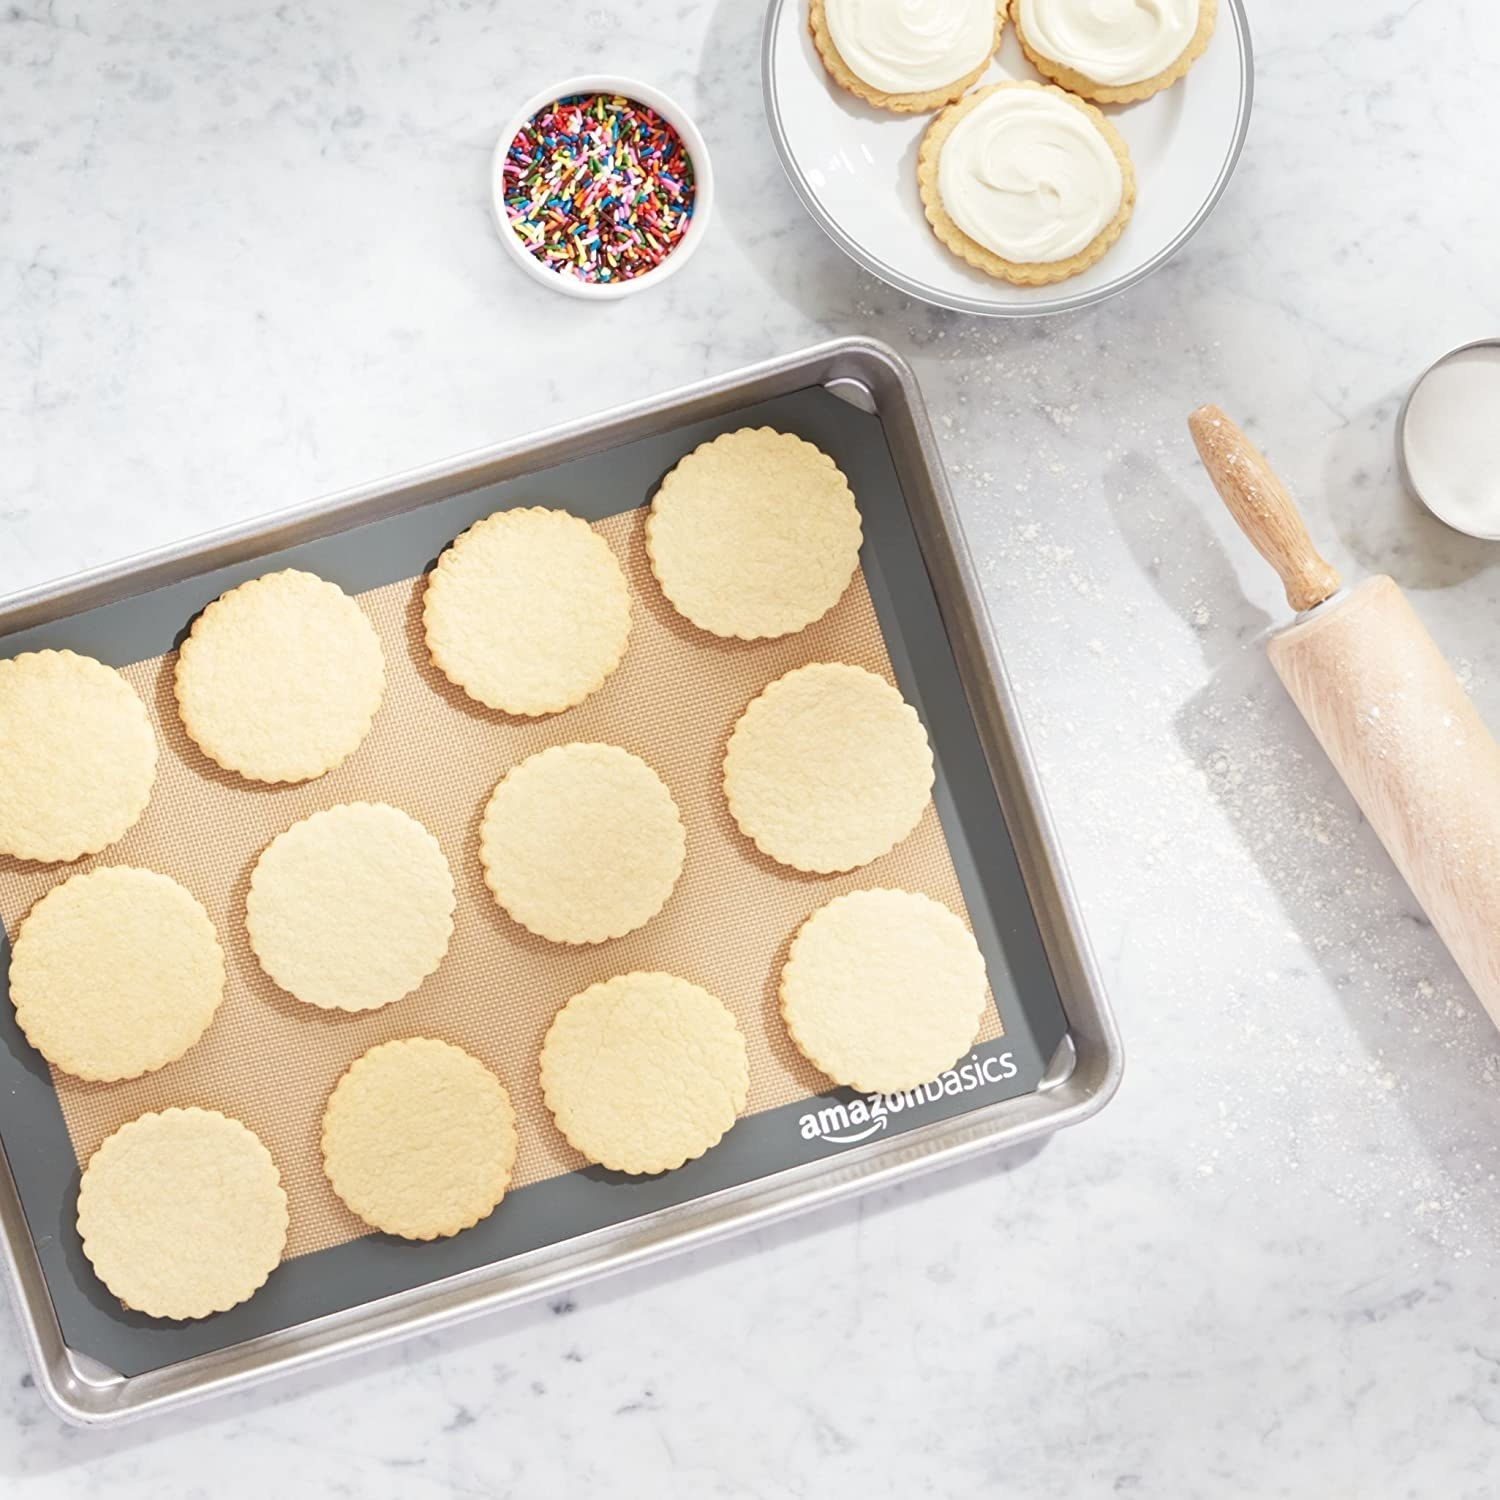 Cookies on a silicone sheet